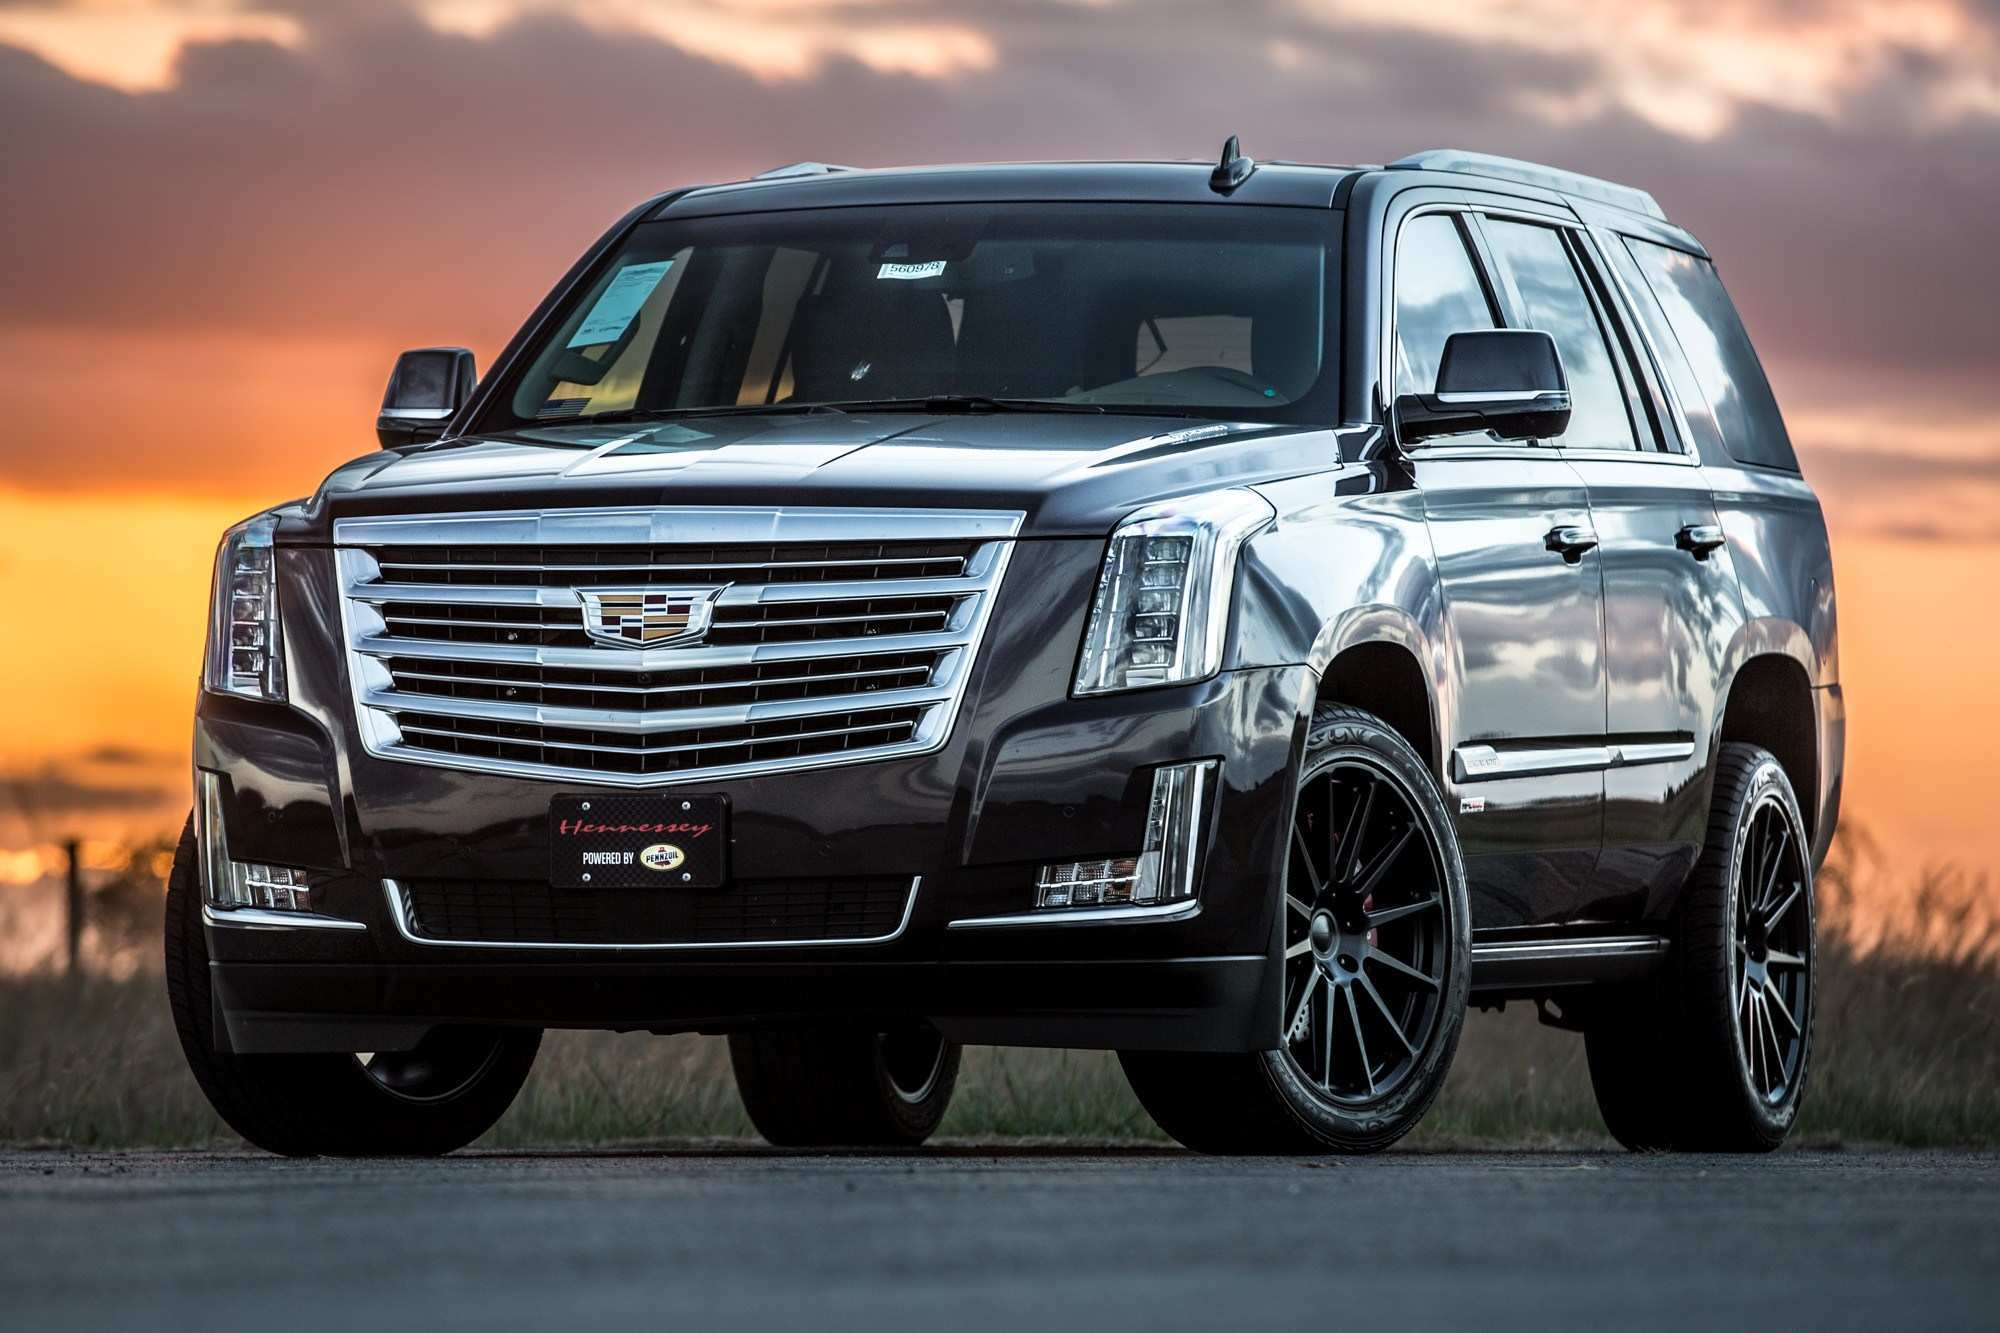 36 The 2019 Cadillac Escalade Price Photos with 2019 Cadillac Escalade Price